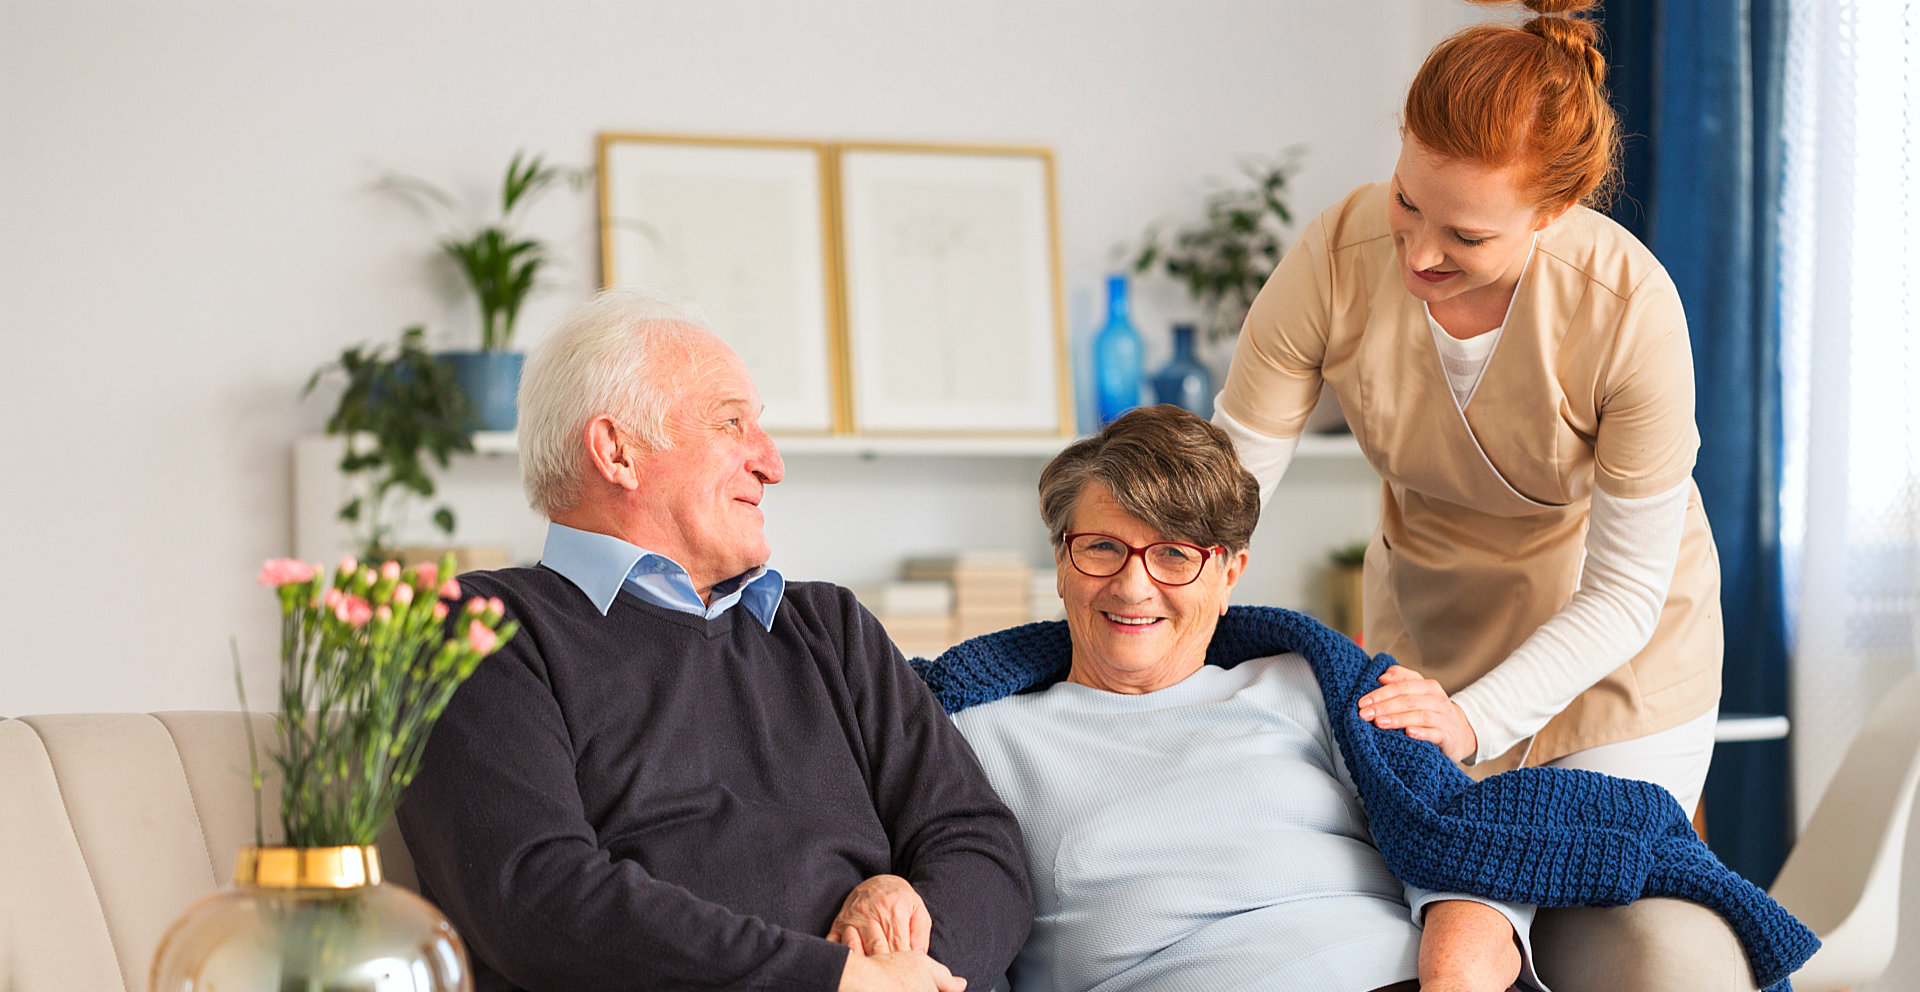 caregiver give blanket to senior woman while senior man looking at the caregiver